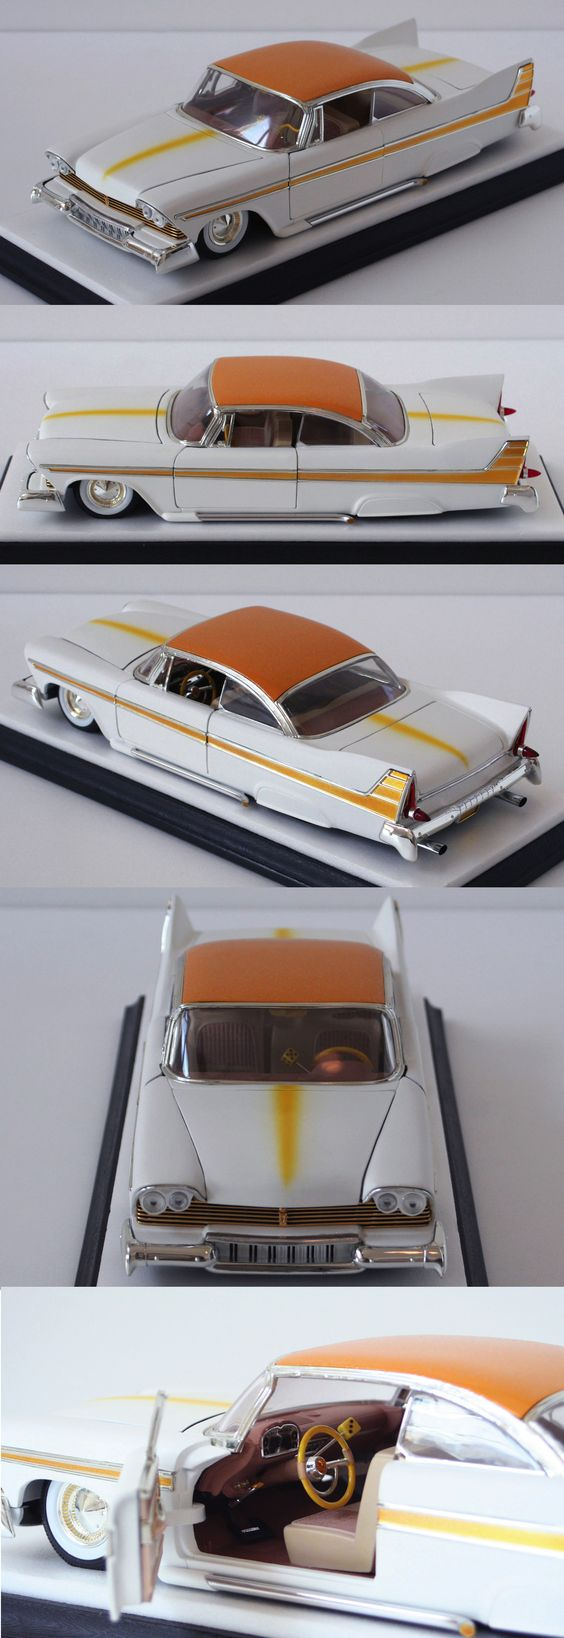 Model Kits Contest - Hot rods and custom cars - Page 2 Df9b9f10